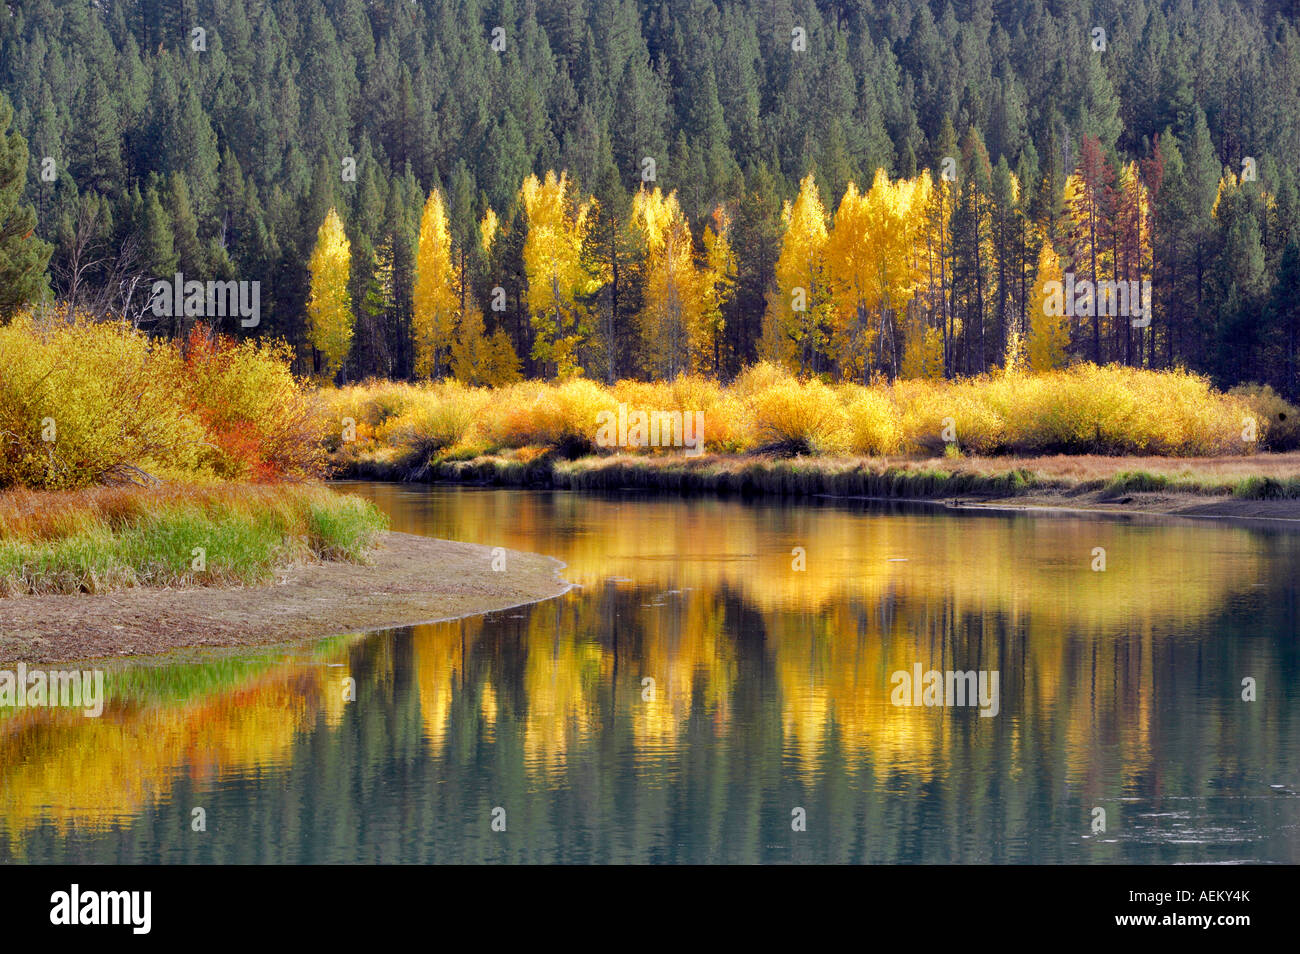 Fall colored aspenn trees and Deschutes River Central Oregon - Stock Image